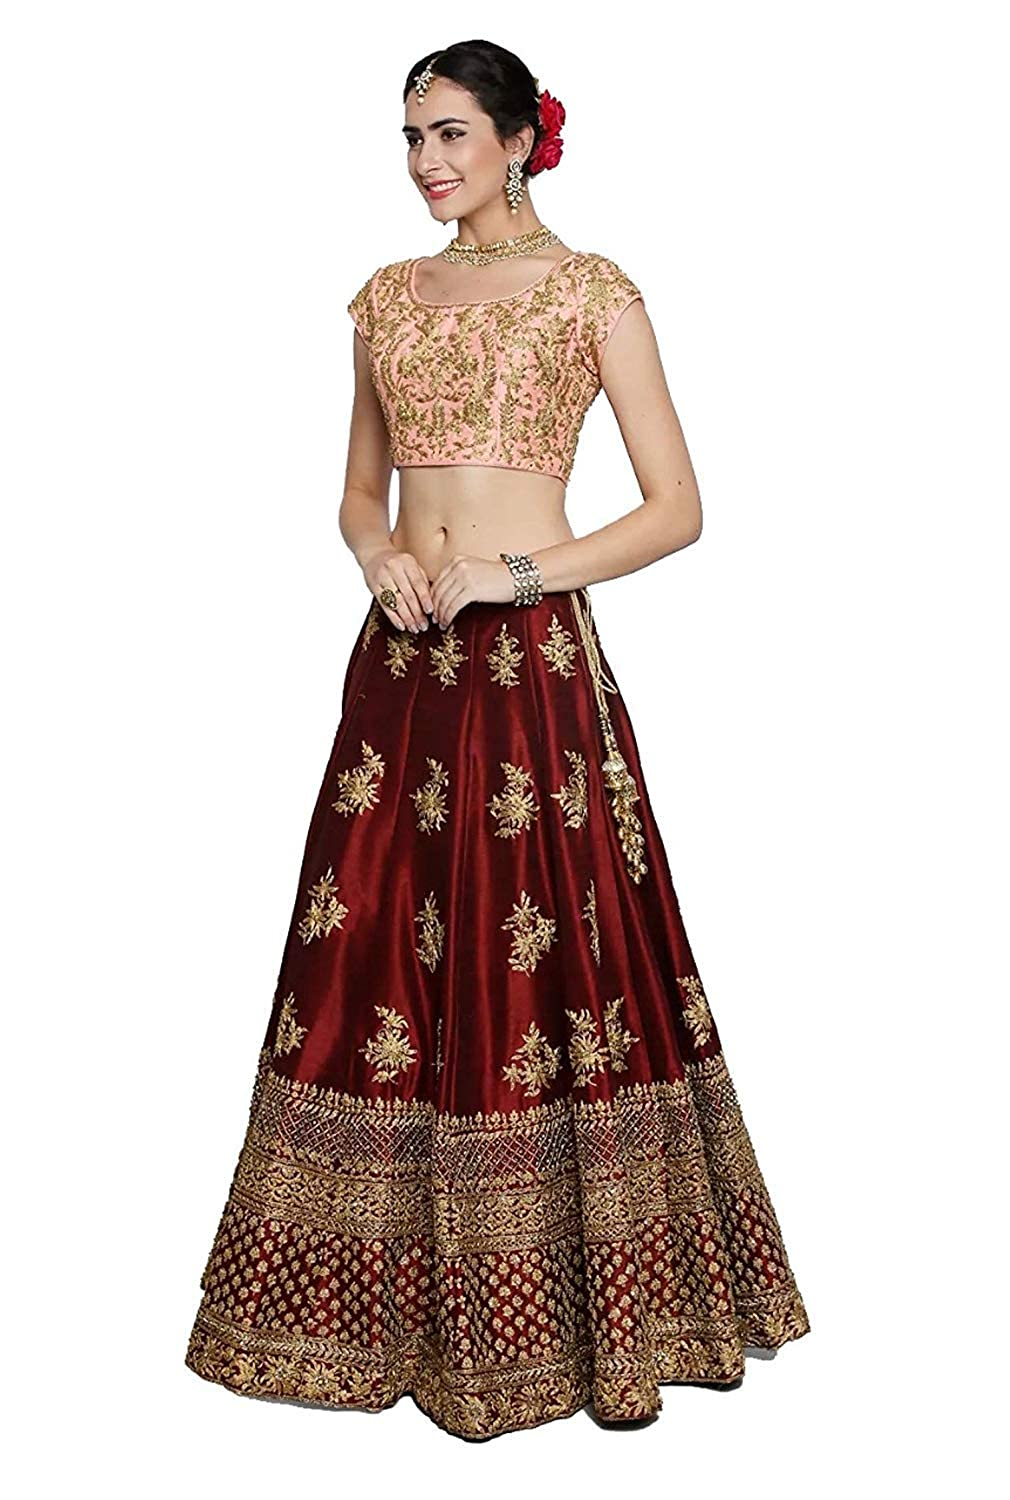 21a3412150 Queen of India Fashion Women's Taffeta Silk Heavy Embroidery Work Lehenga  Choli (Red, Free Size): Amazon.in: Clothing & Accessories